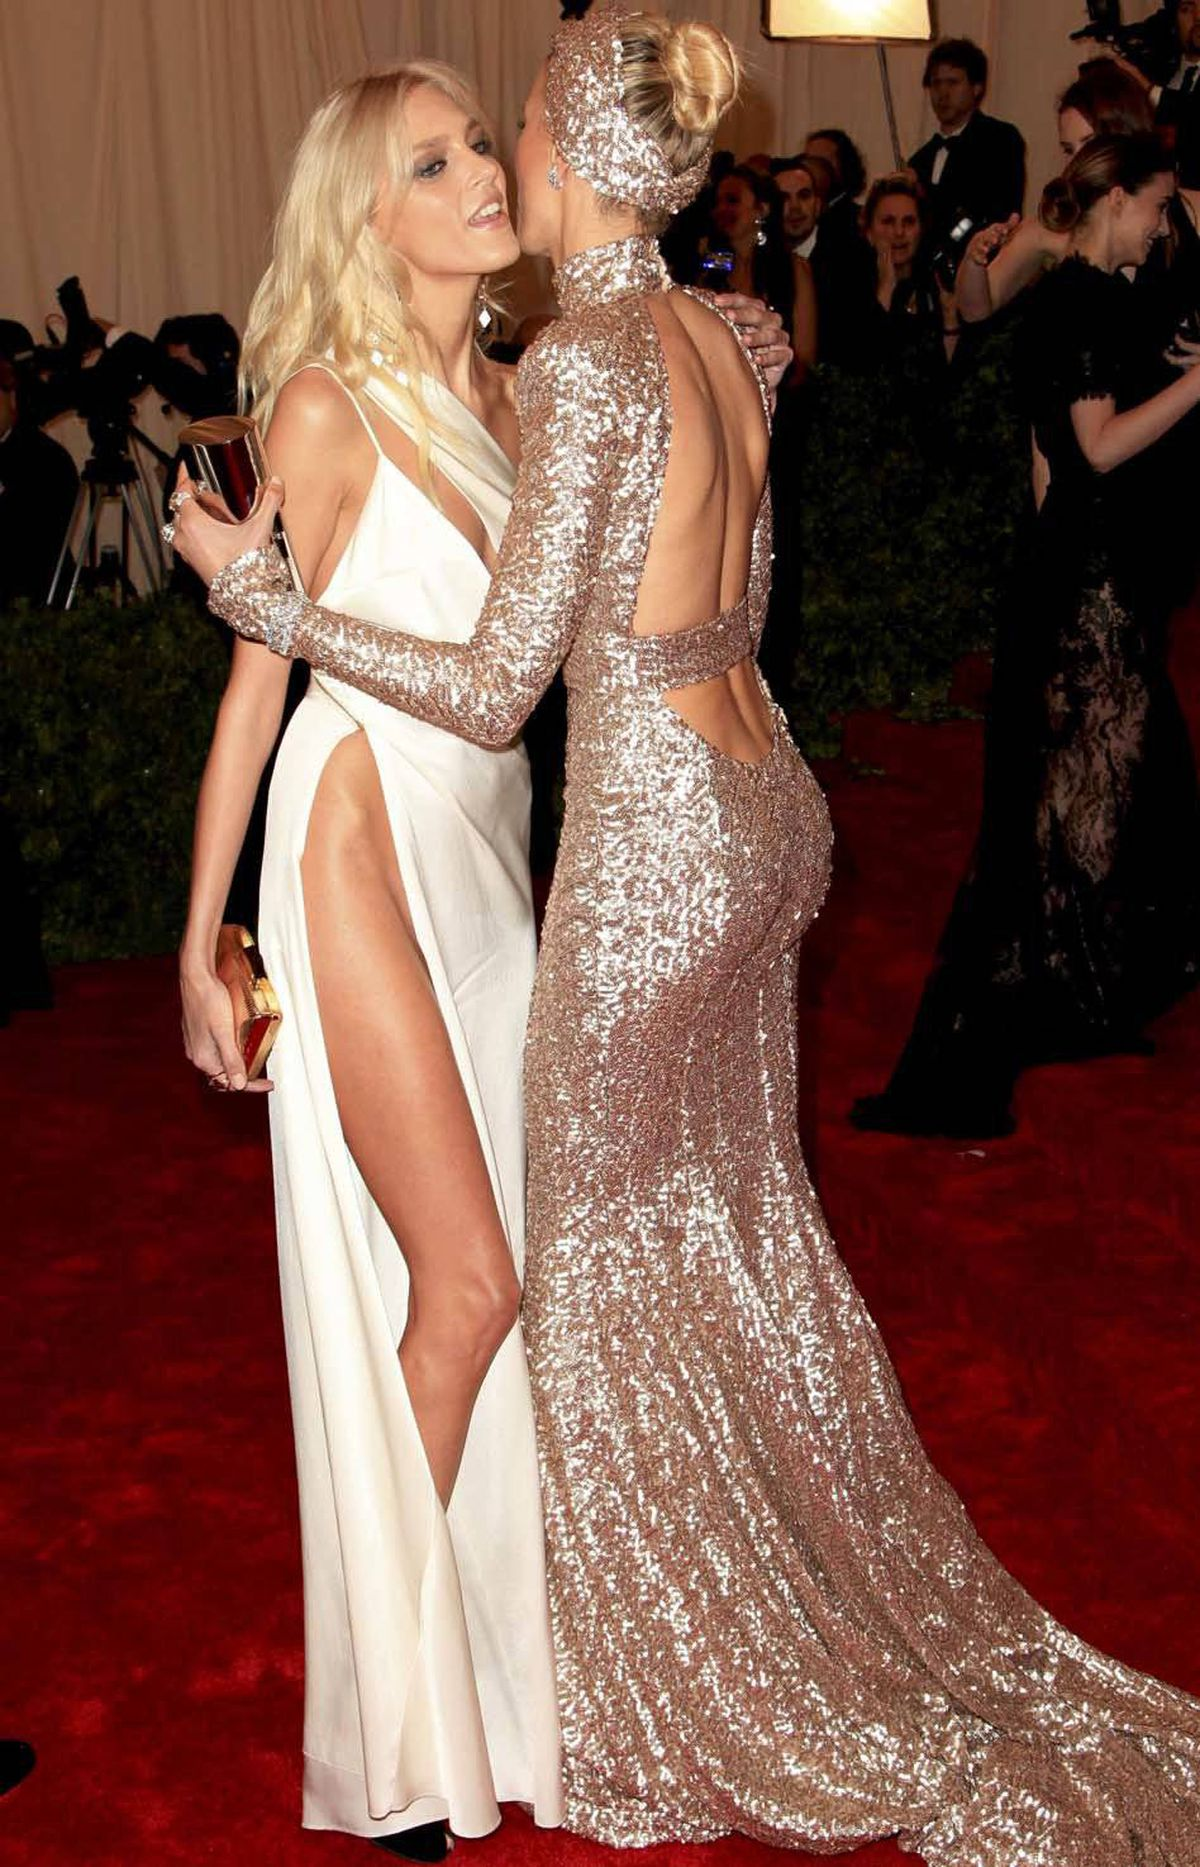 Karolina Kurkova (right) of greets fellow Polish model Anja Rubik at the Metropolitan Museum of Art Costume Institute Benefit in New York last week. There's something missing in this photo but I can't put my finger on it.